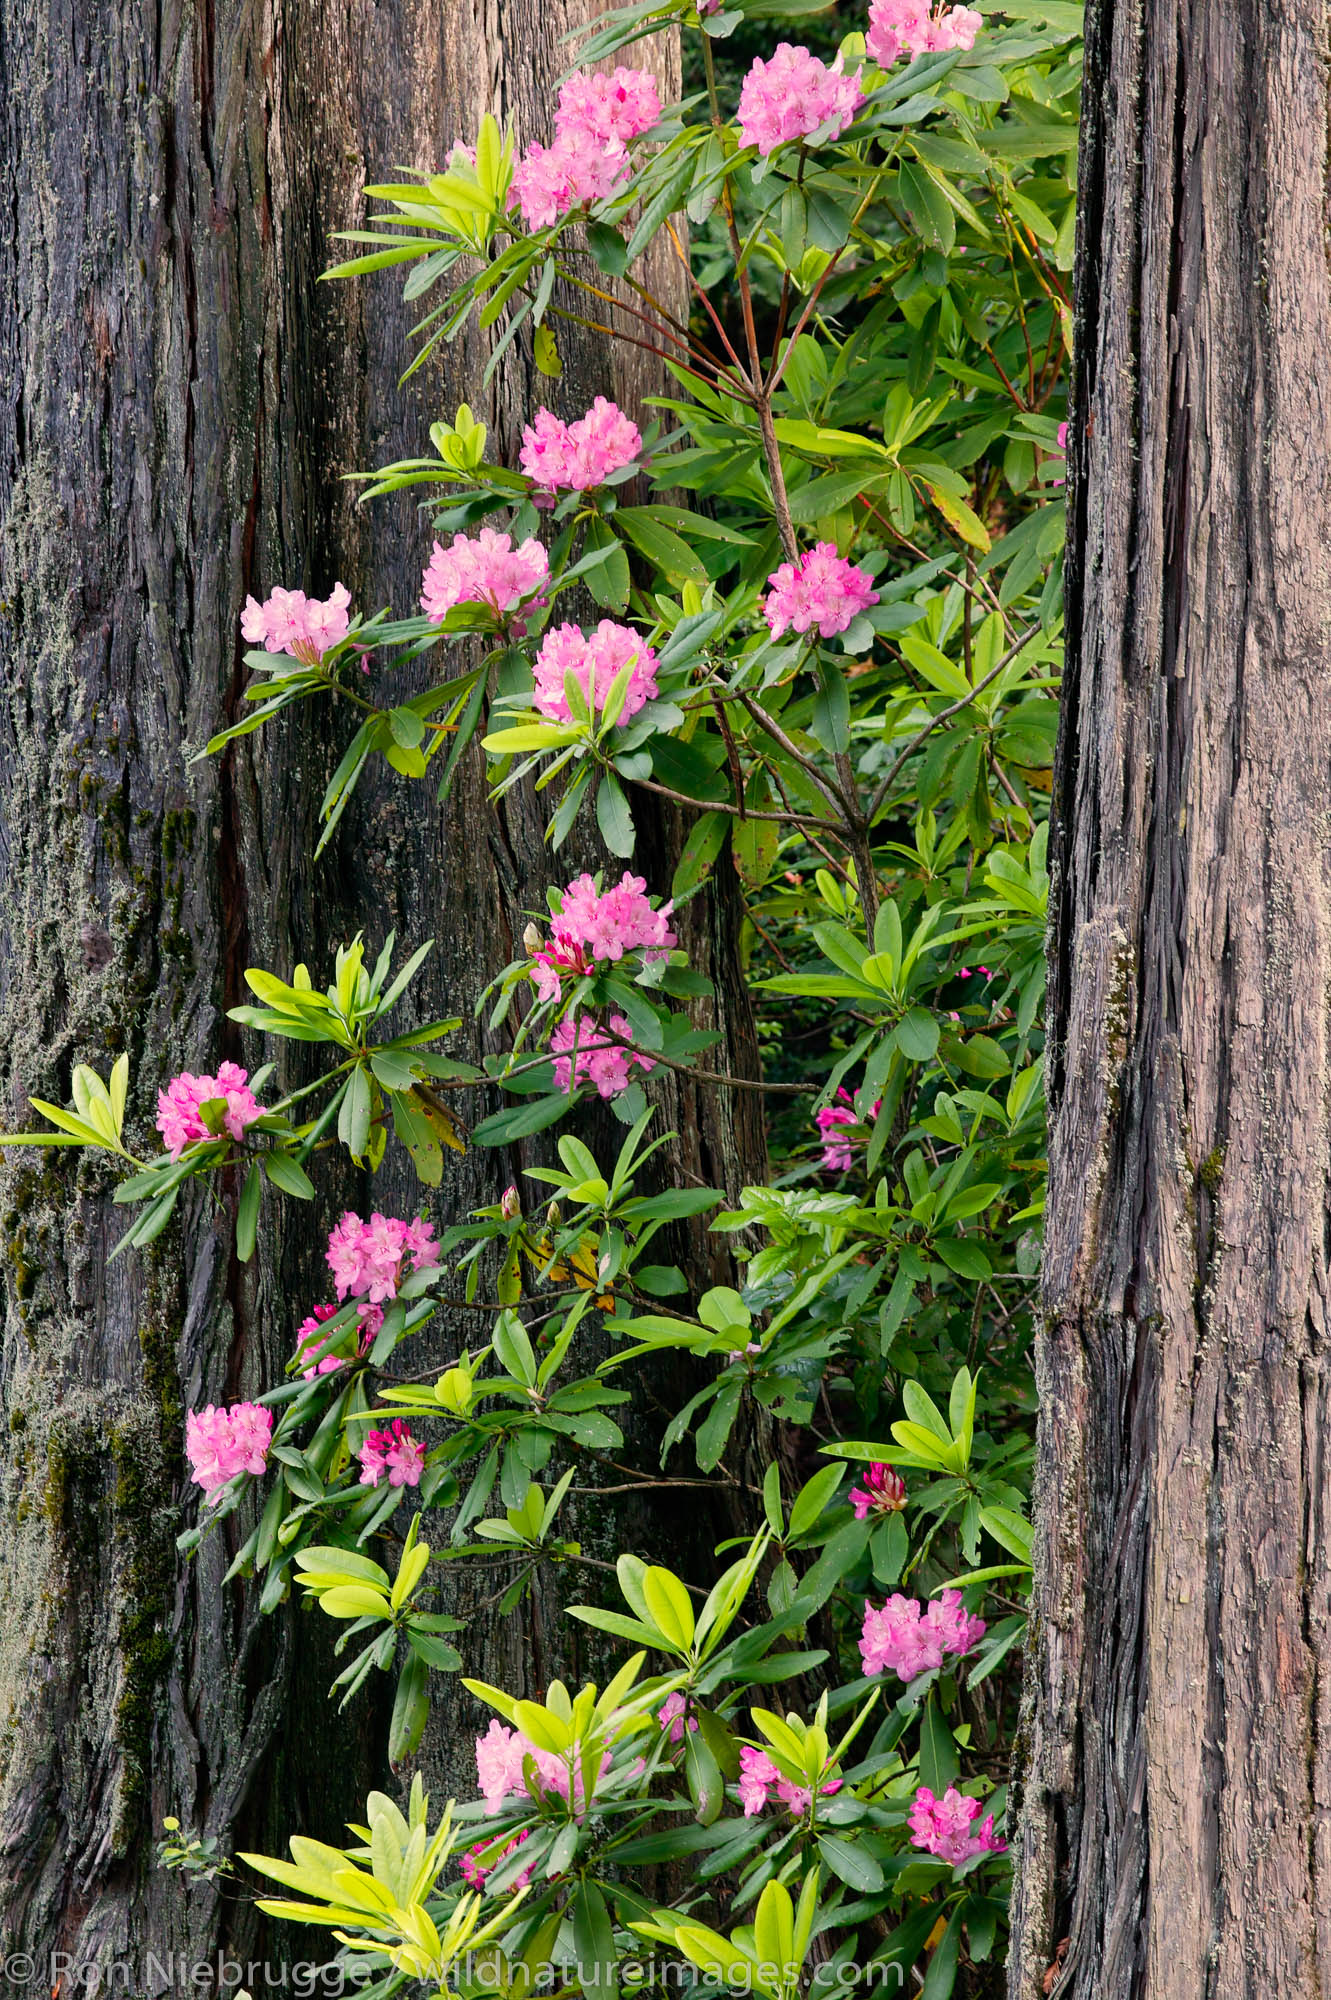 California, Rhododendrons, Del Norte Coast Redwoods State Park, redwoods, photo